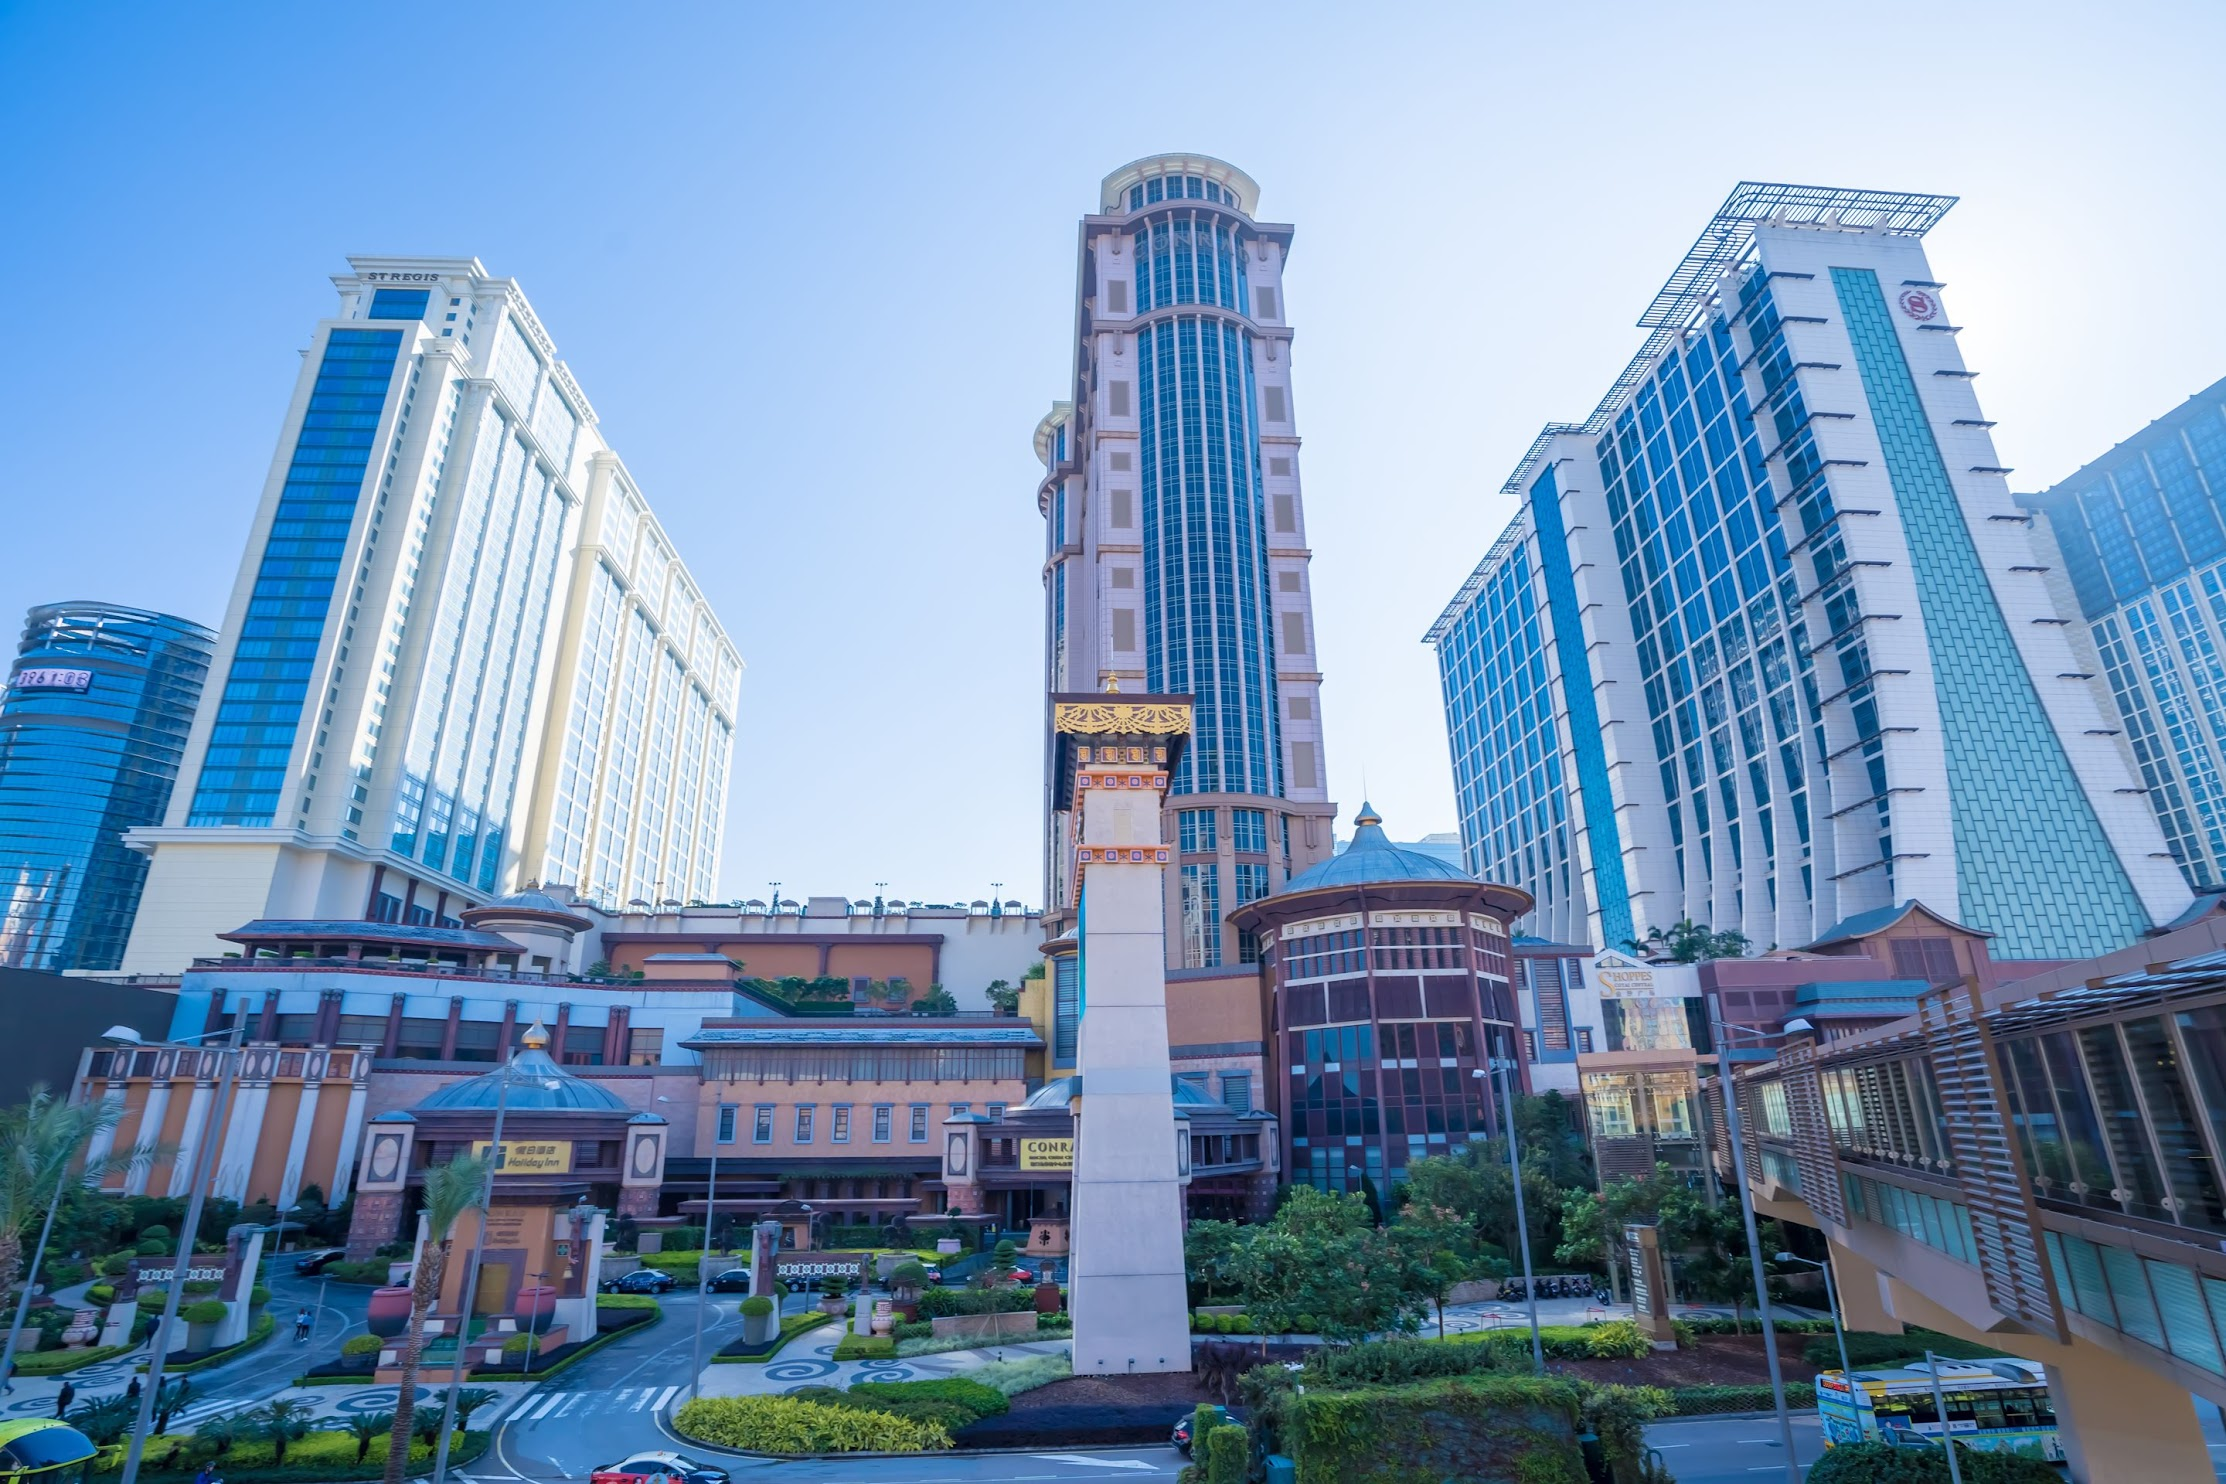 Macau Sands Cotai Central